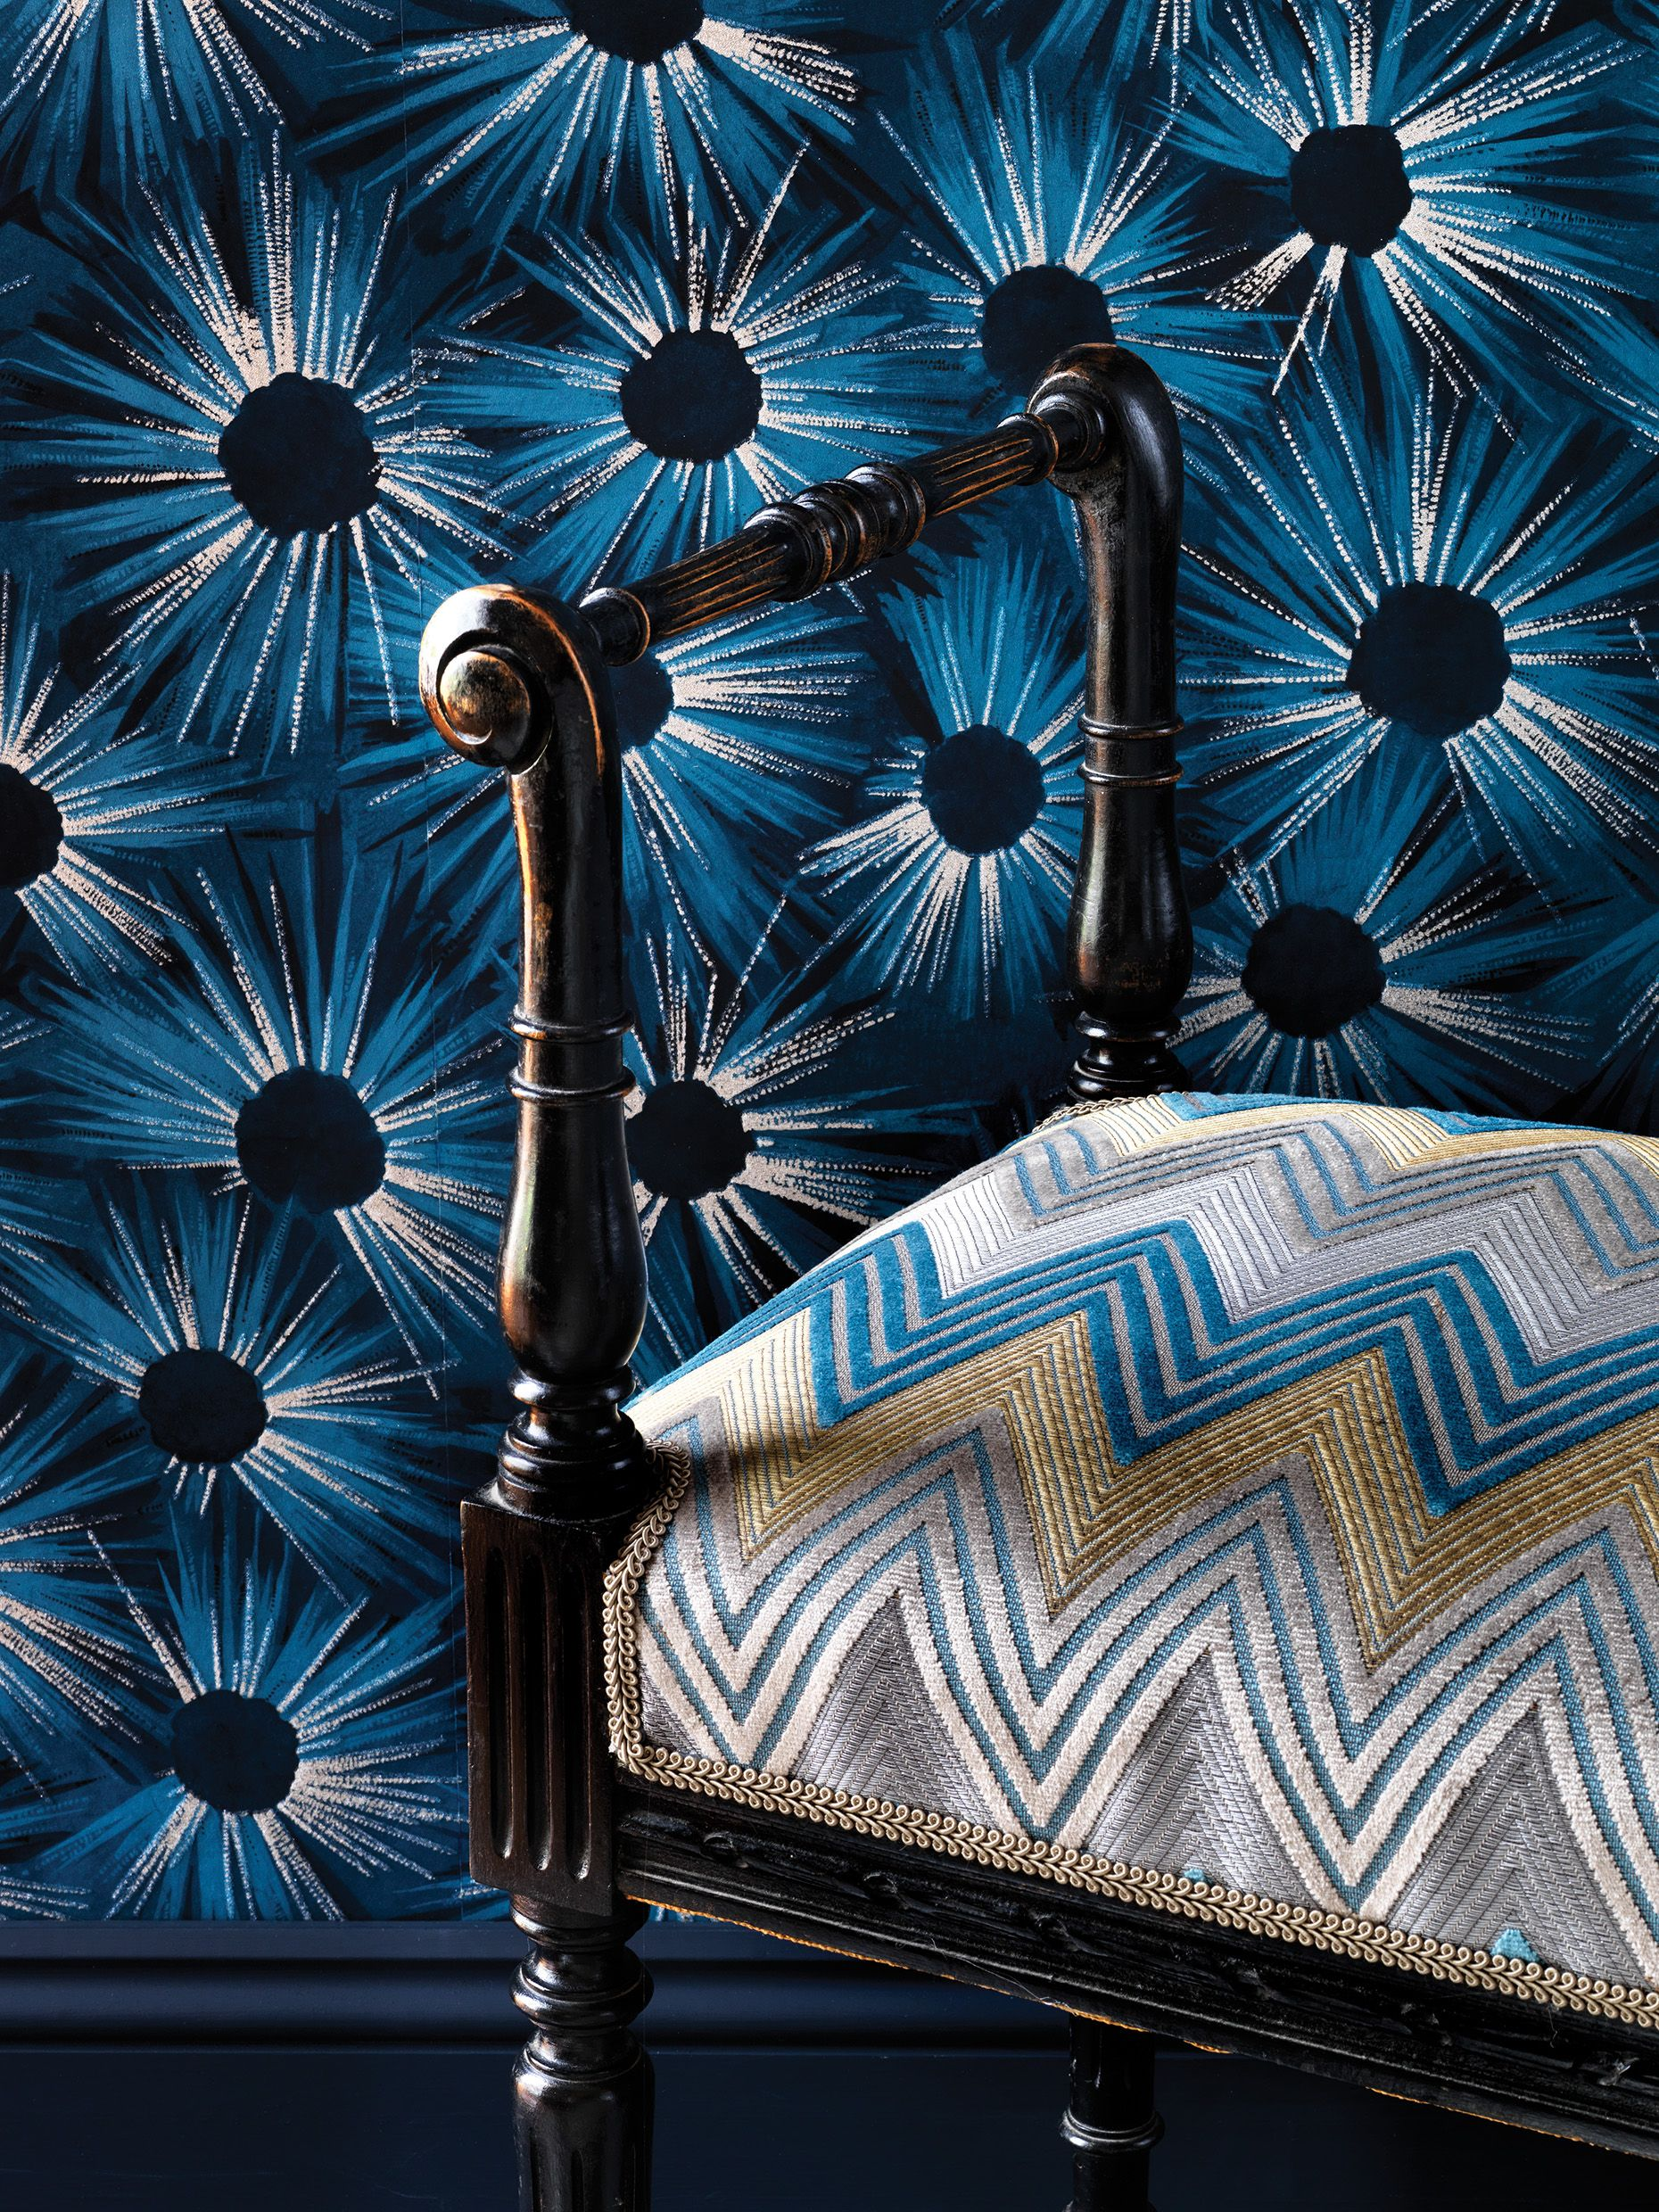 Modern Wallpaper Designs For Walls: NEW ESTELLA Wallpaper And BARGELLO VELVET By Nina Campbell